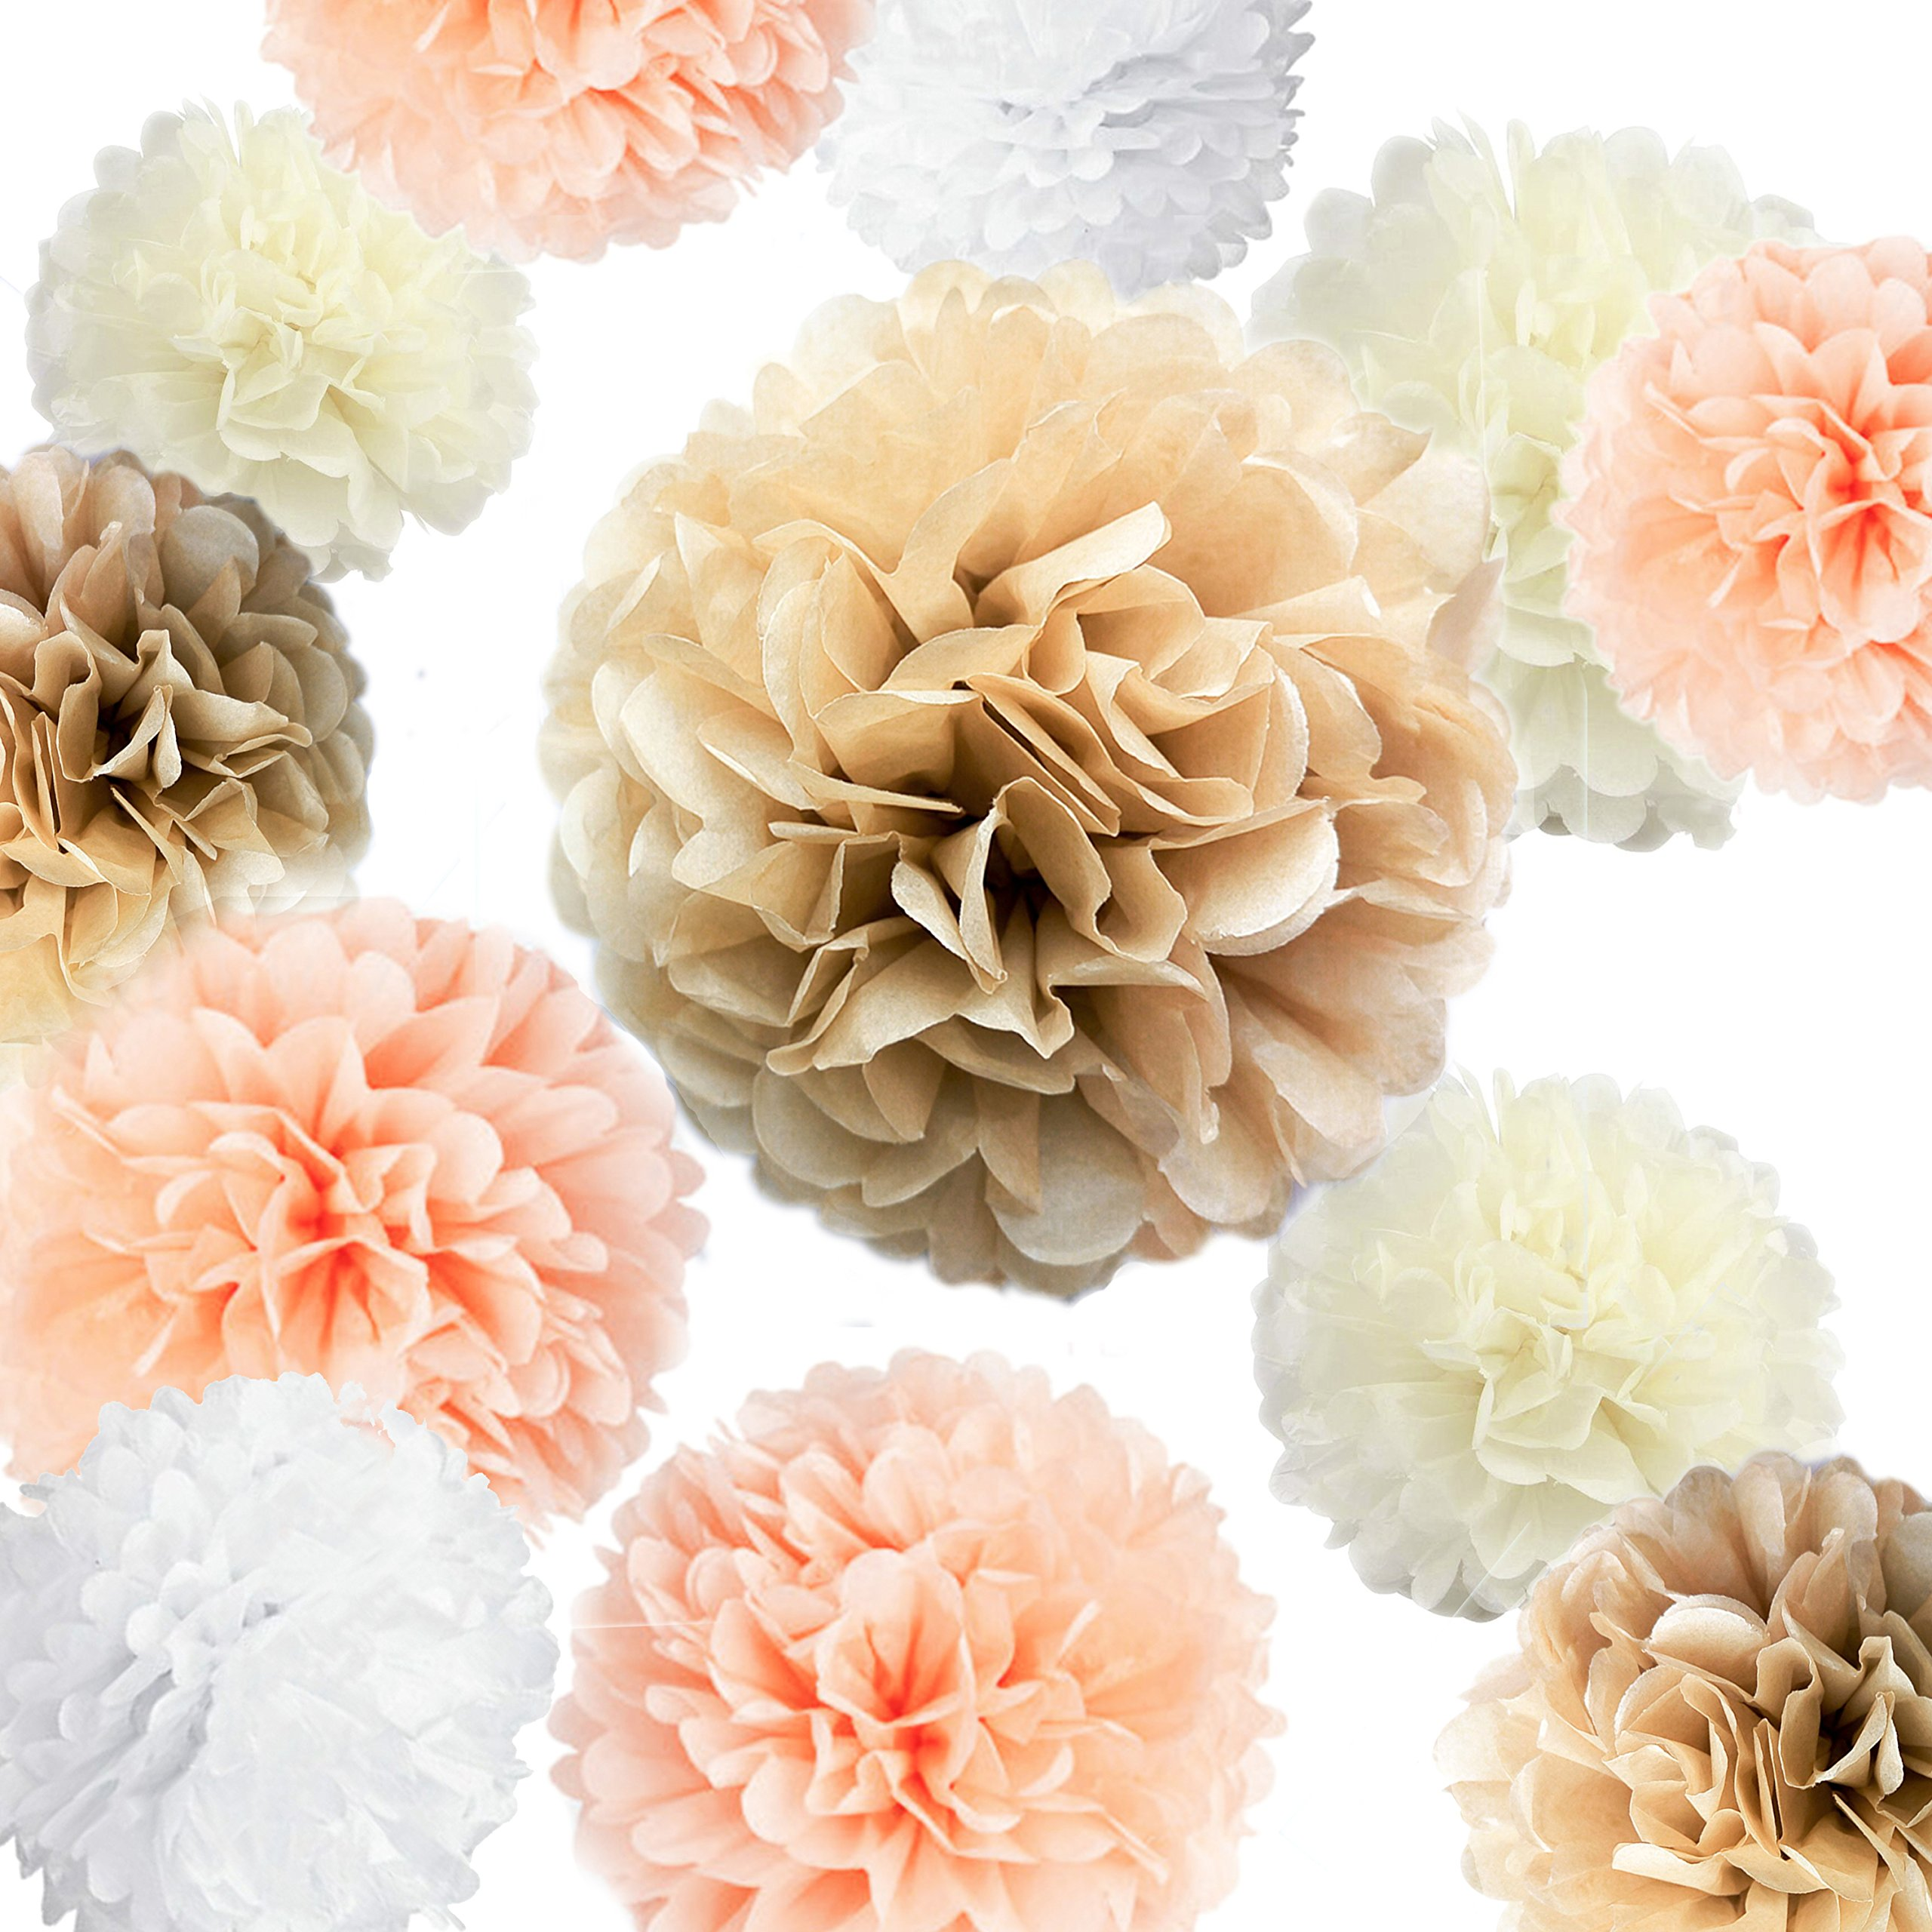 Vidal Crafts 20 Pcs Party Tissue Paper Pom Poms Kit (14'', 10'', 8'', 6'' Paper Flowers) for Wedding, Birthday, Baby Shower, Bachelorette, Nursery Decor - Champagne, Peach, Ivory, White by Vidal Crafts for a perfect party